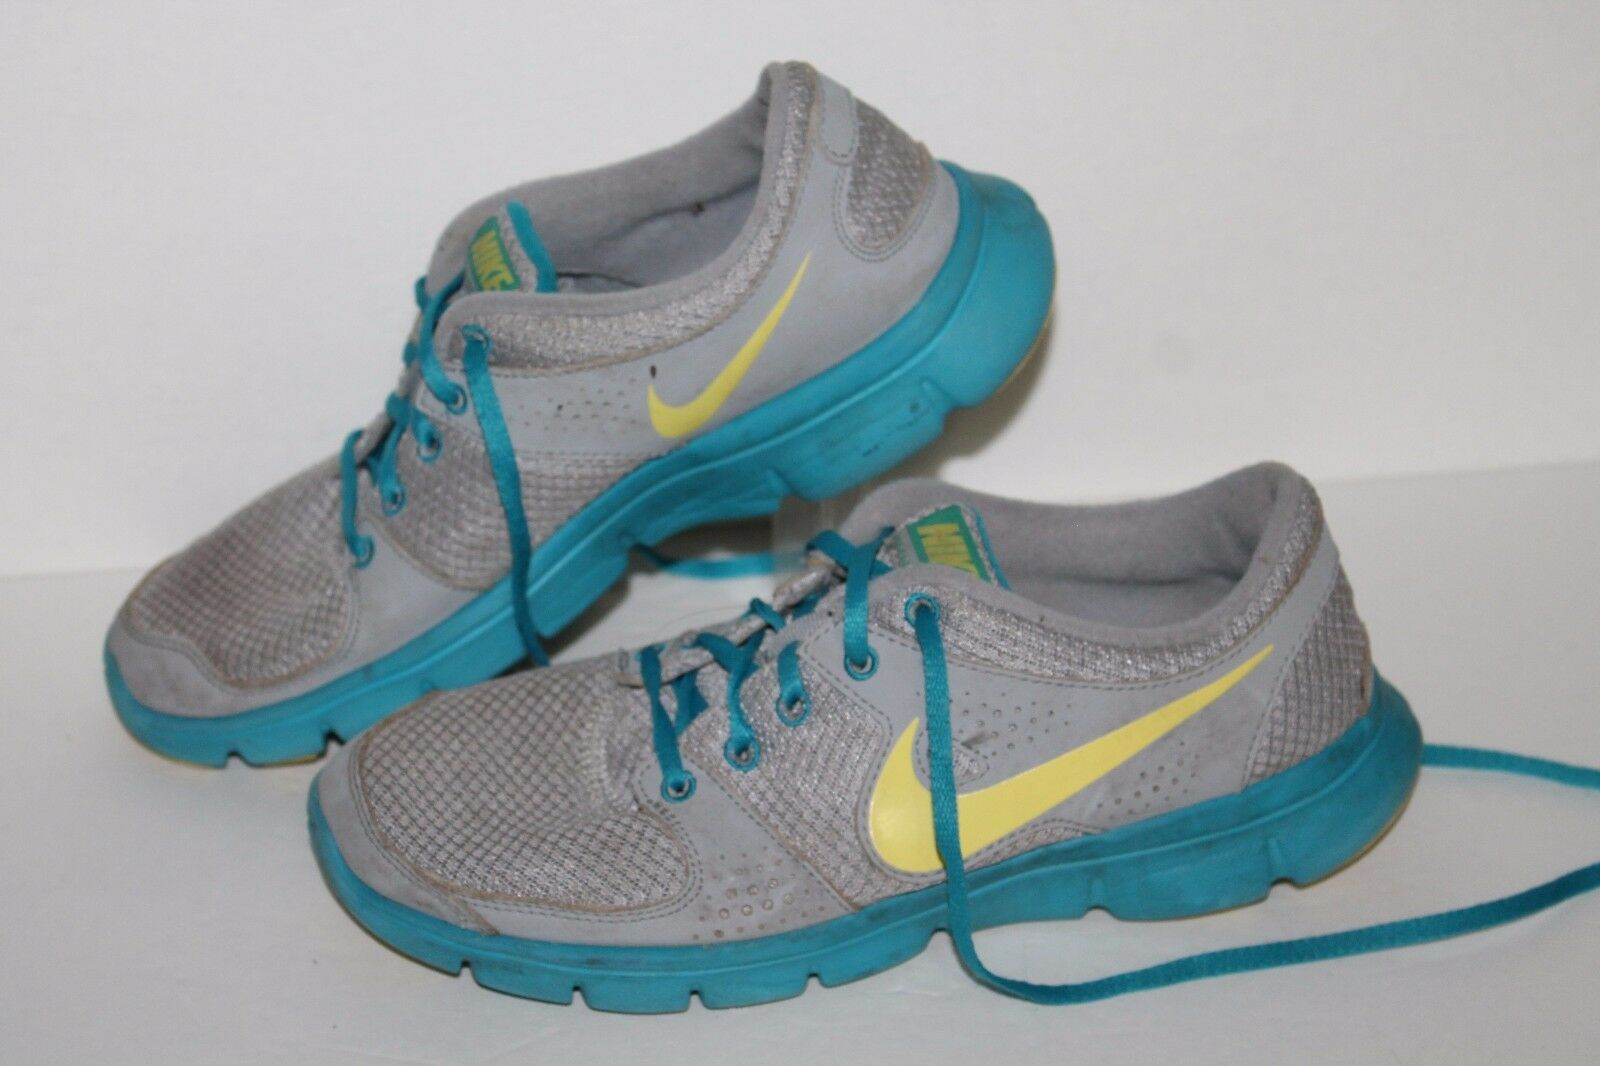 Nike Free Experience RN Running Shoes, Grey/Blue/Yell. Women's 8.5 New shoes for men and women, limited time discount